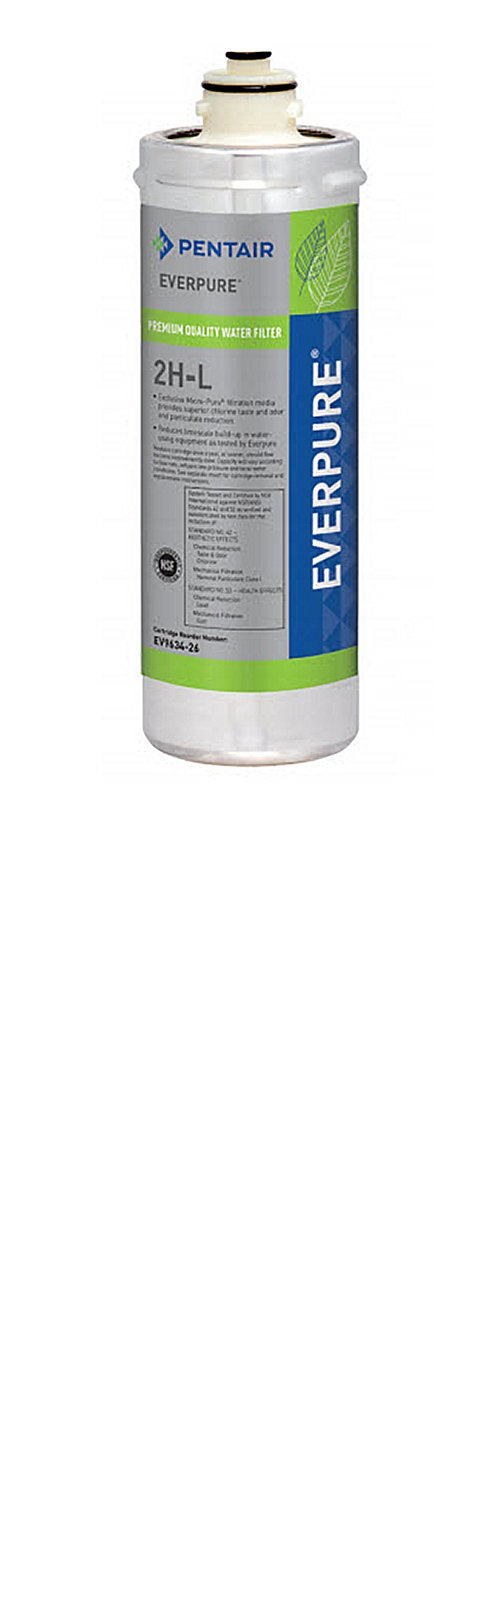 Everpure 2h L Water Filter Replacement Cartridge